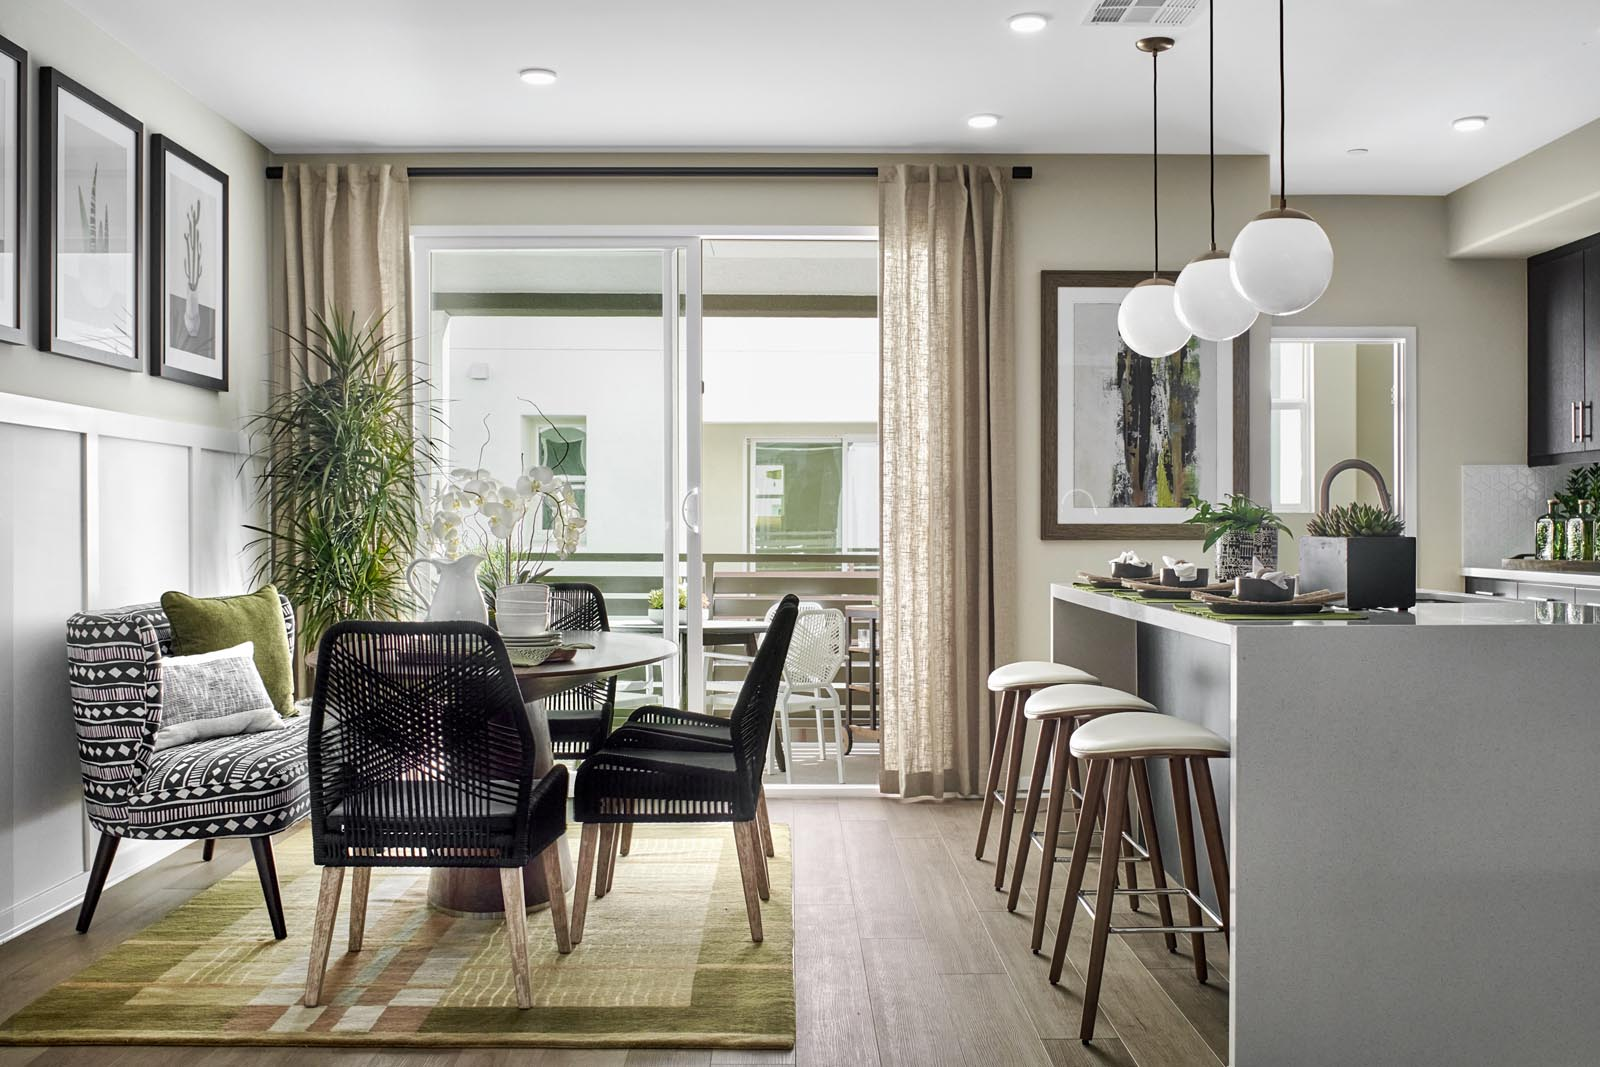 Dining Area | Residence 3 | Enliven | New Homes in Rancho Cucamonga, CA | Van Daele Homes